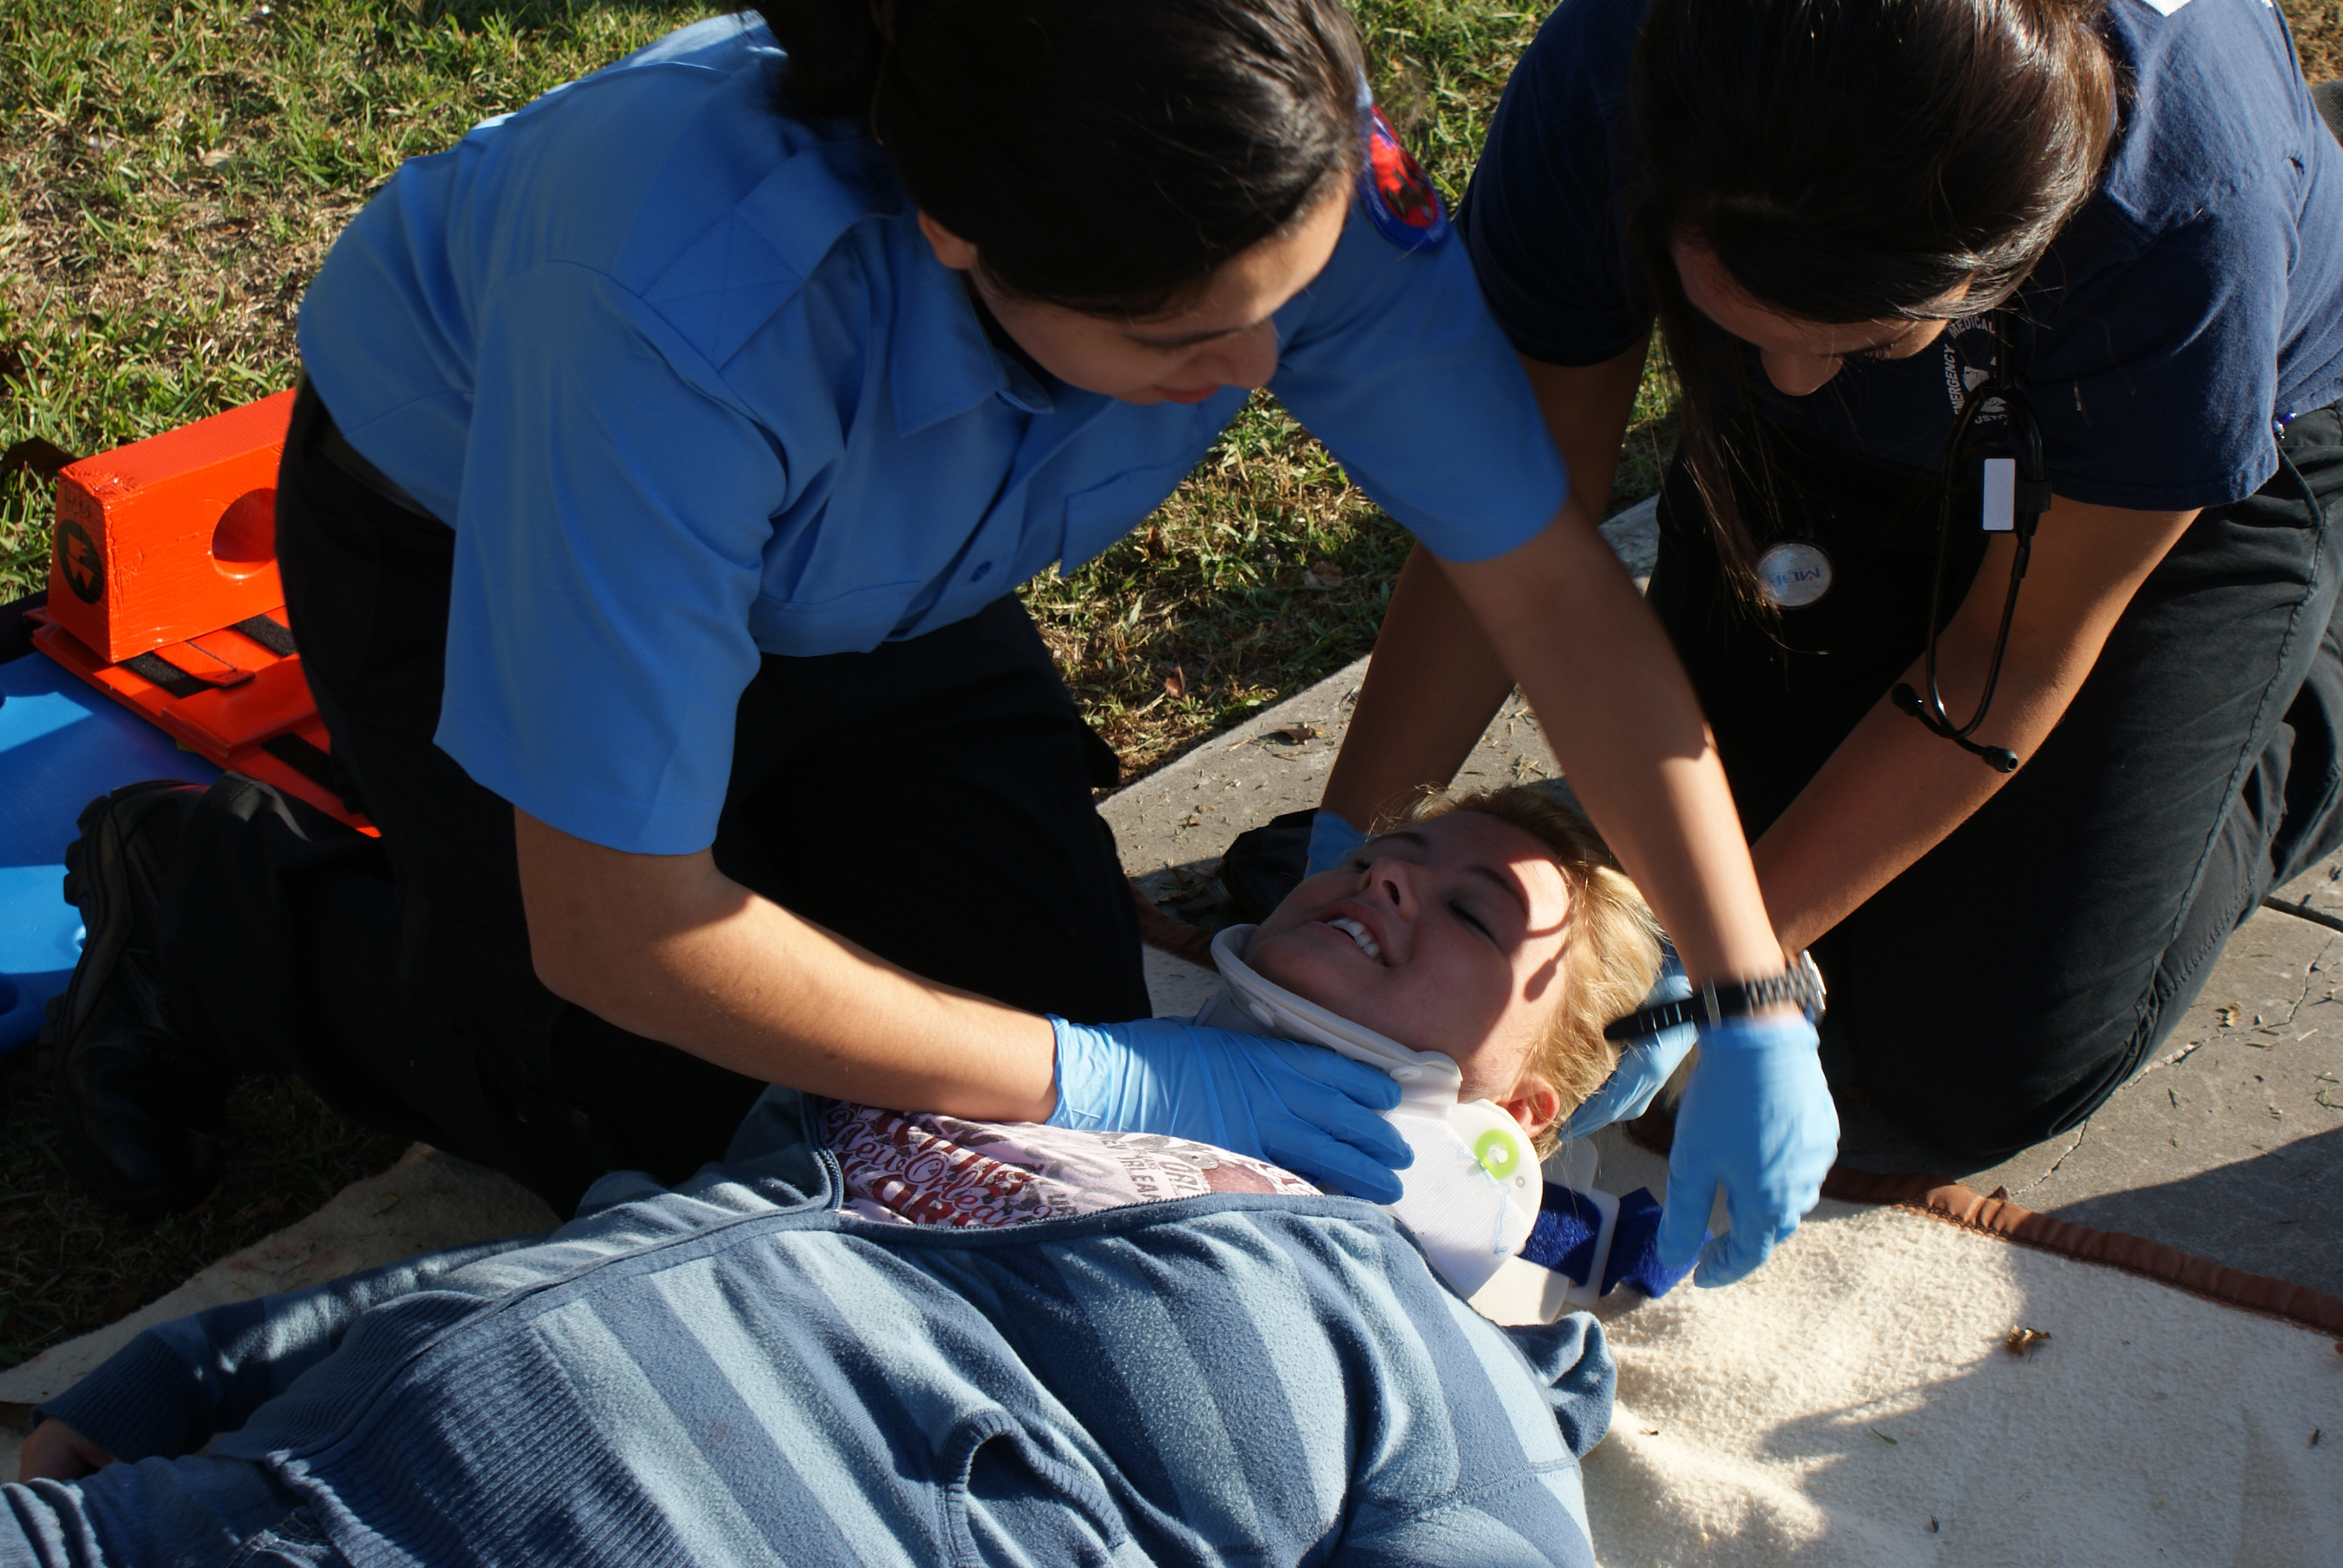 Image of Medical Emergency Workers Applying a Neck Brace